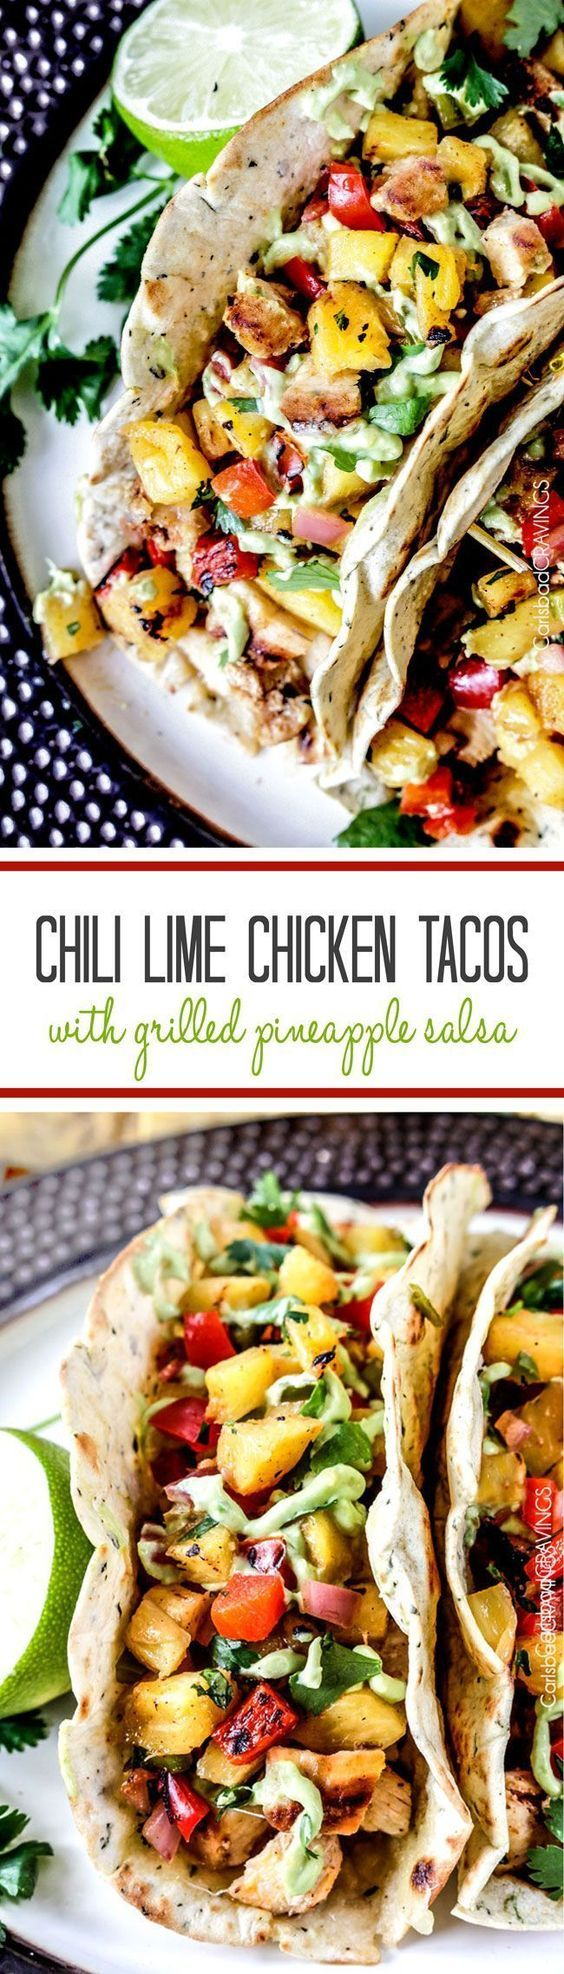 Chili Lime Chicken Tacos with Grilled Pineapple Salsa (Video!)